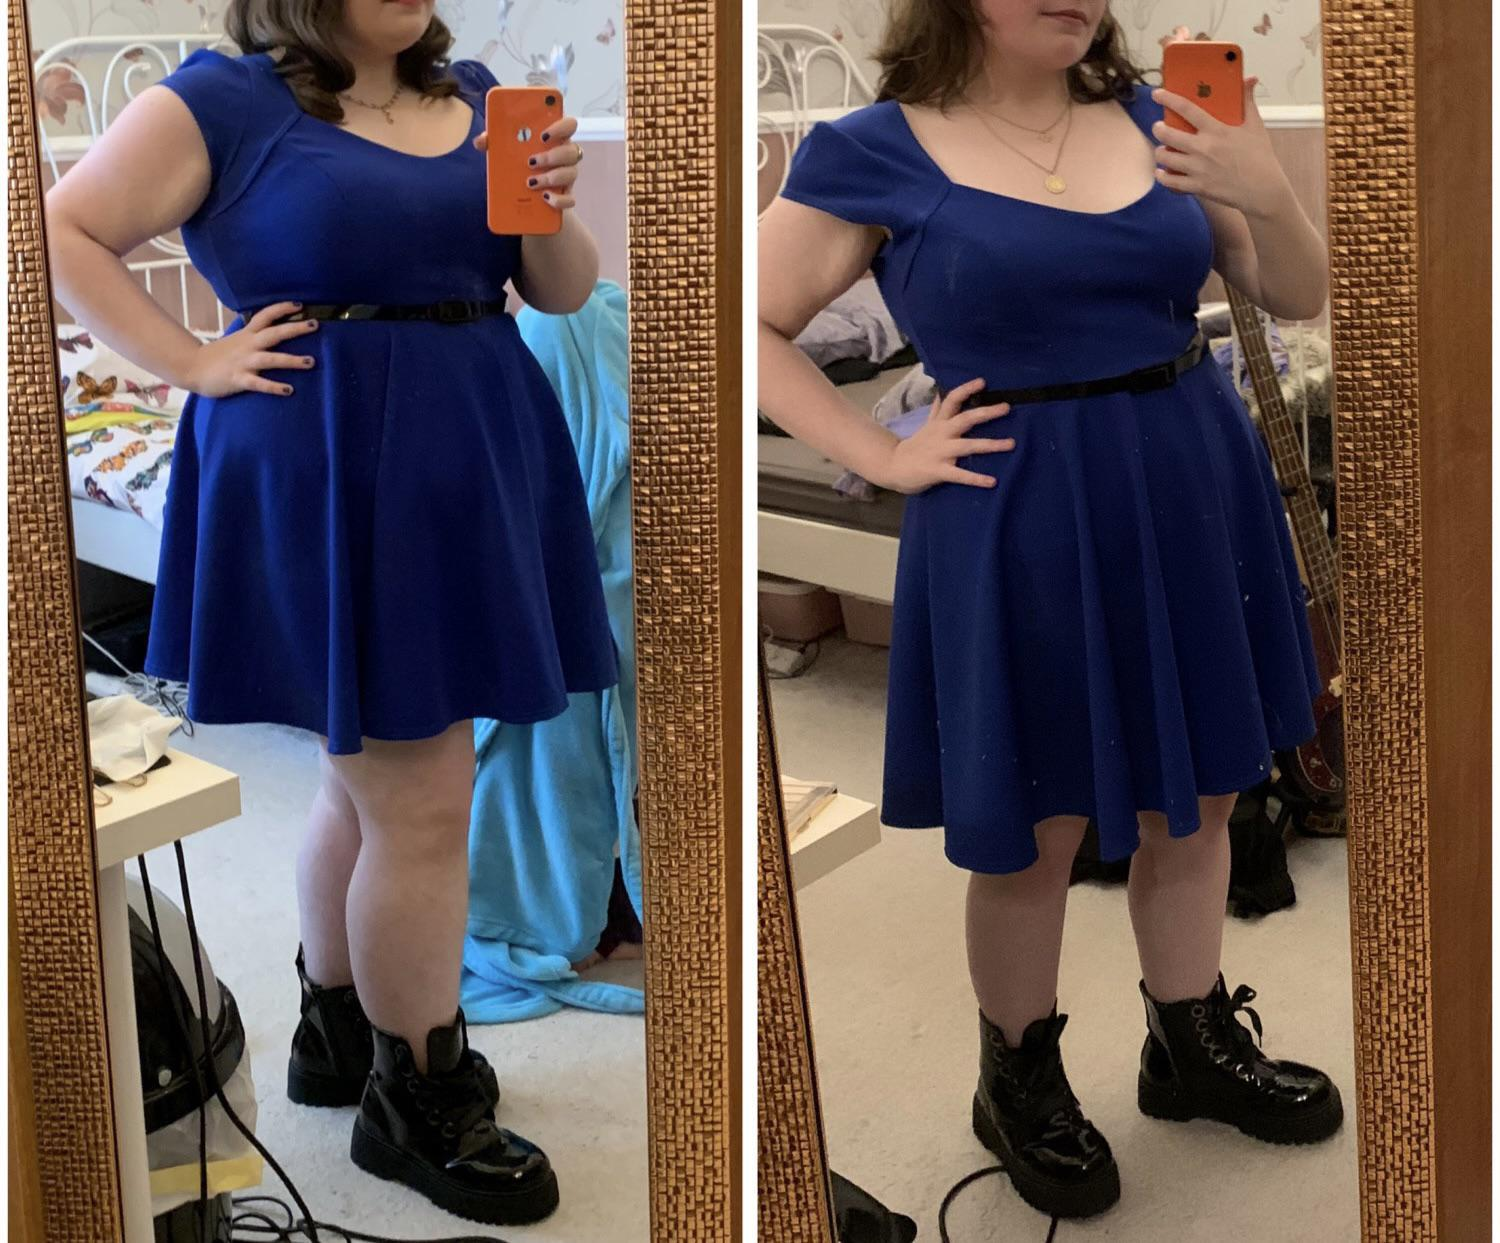 5 foot Female Before and After 52 lbs Weight Loss 202 lbs to 150 lbs